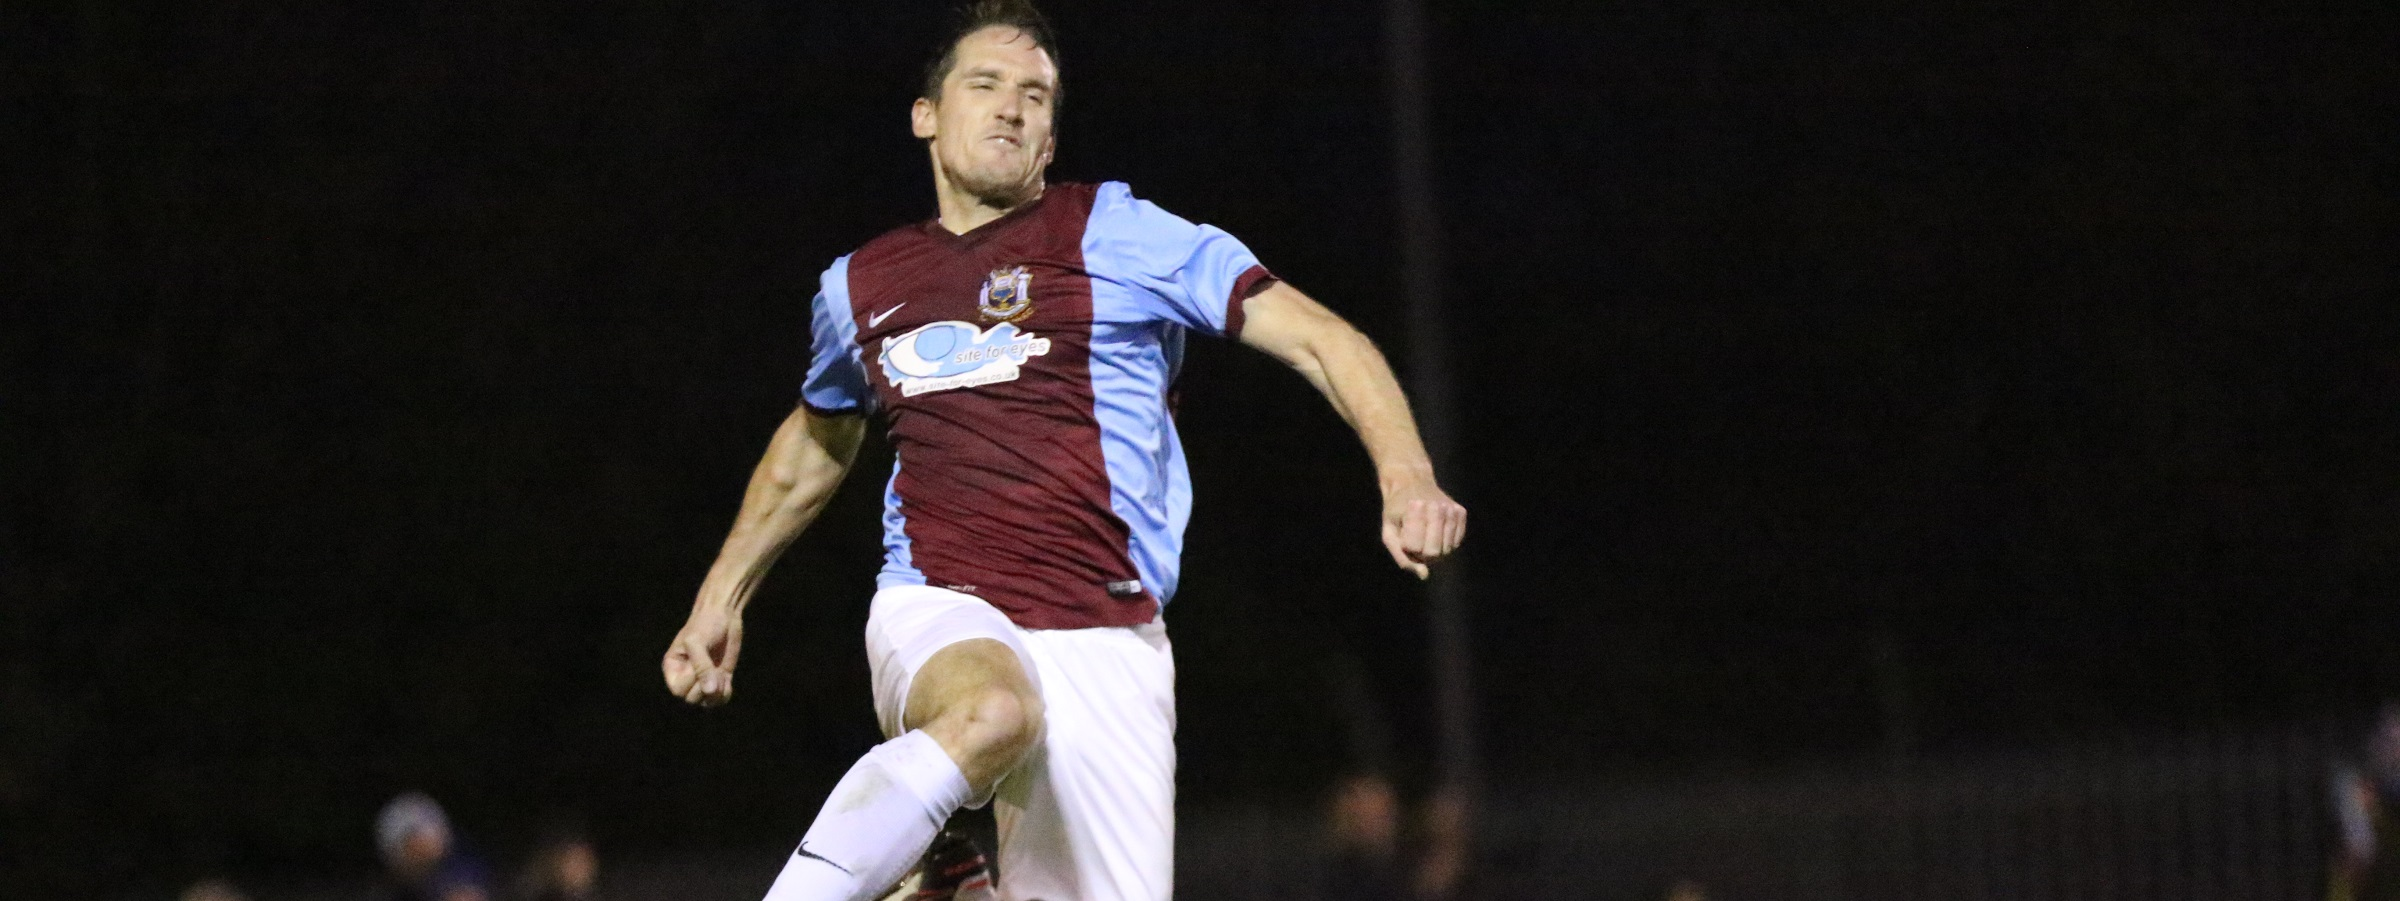 South Shields 3-1 Dunston UTS: Shaw seals late victory